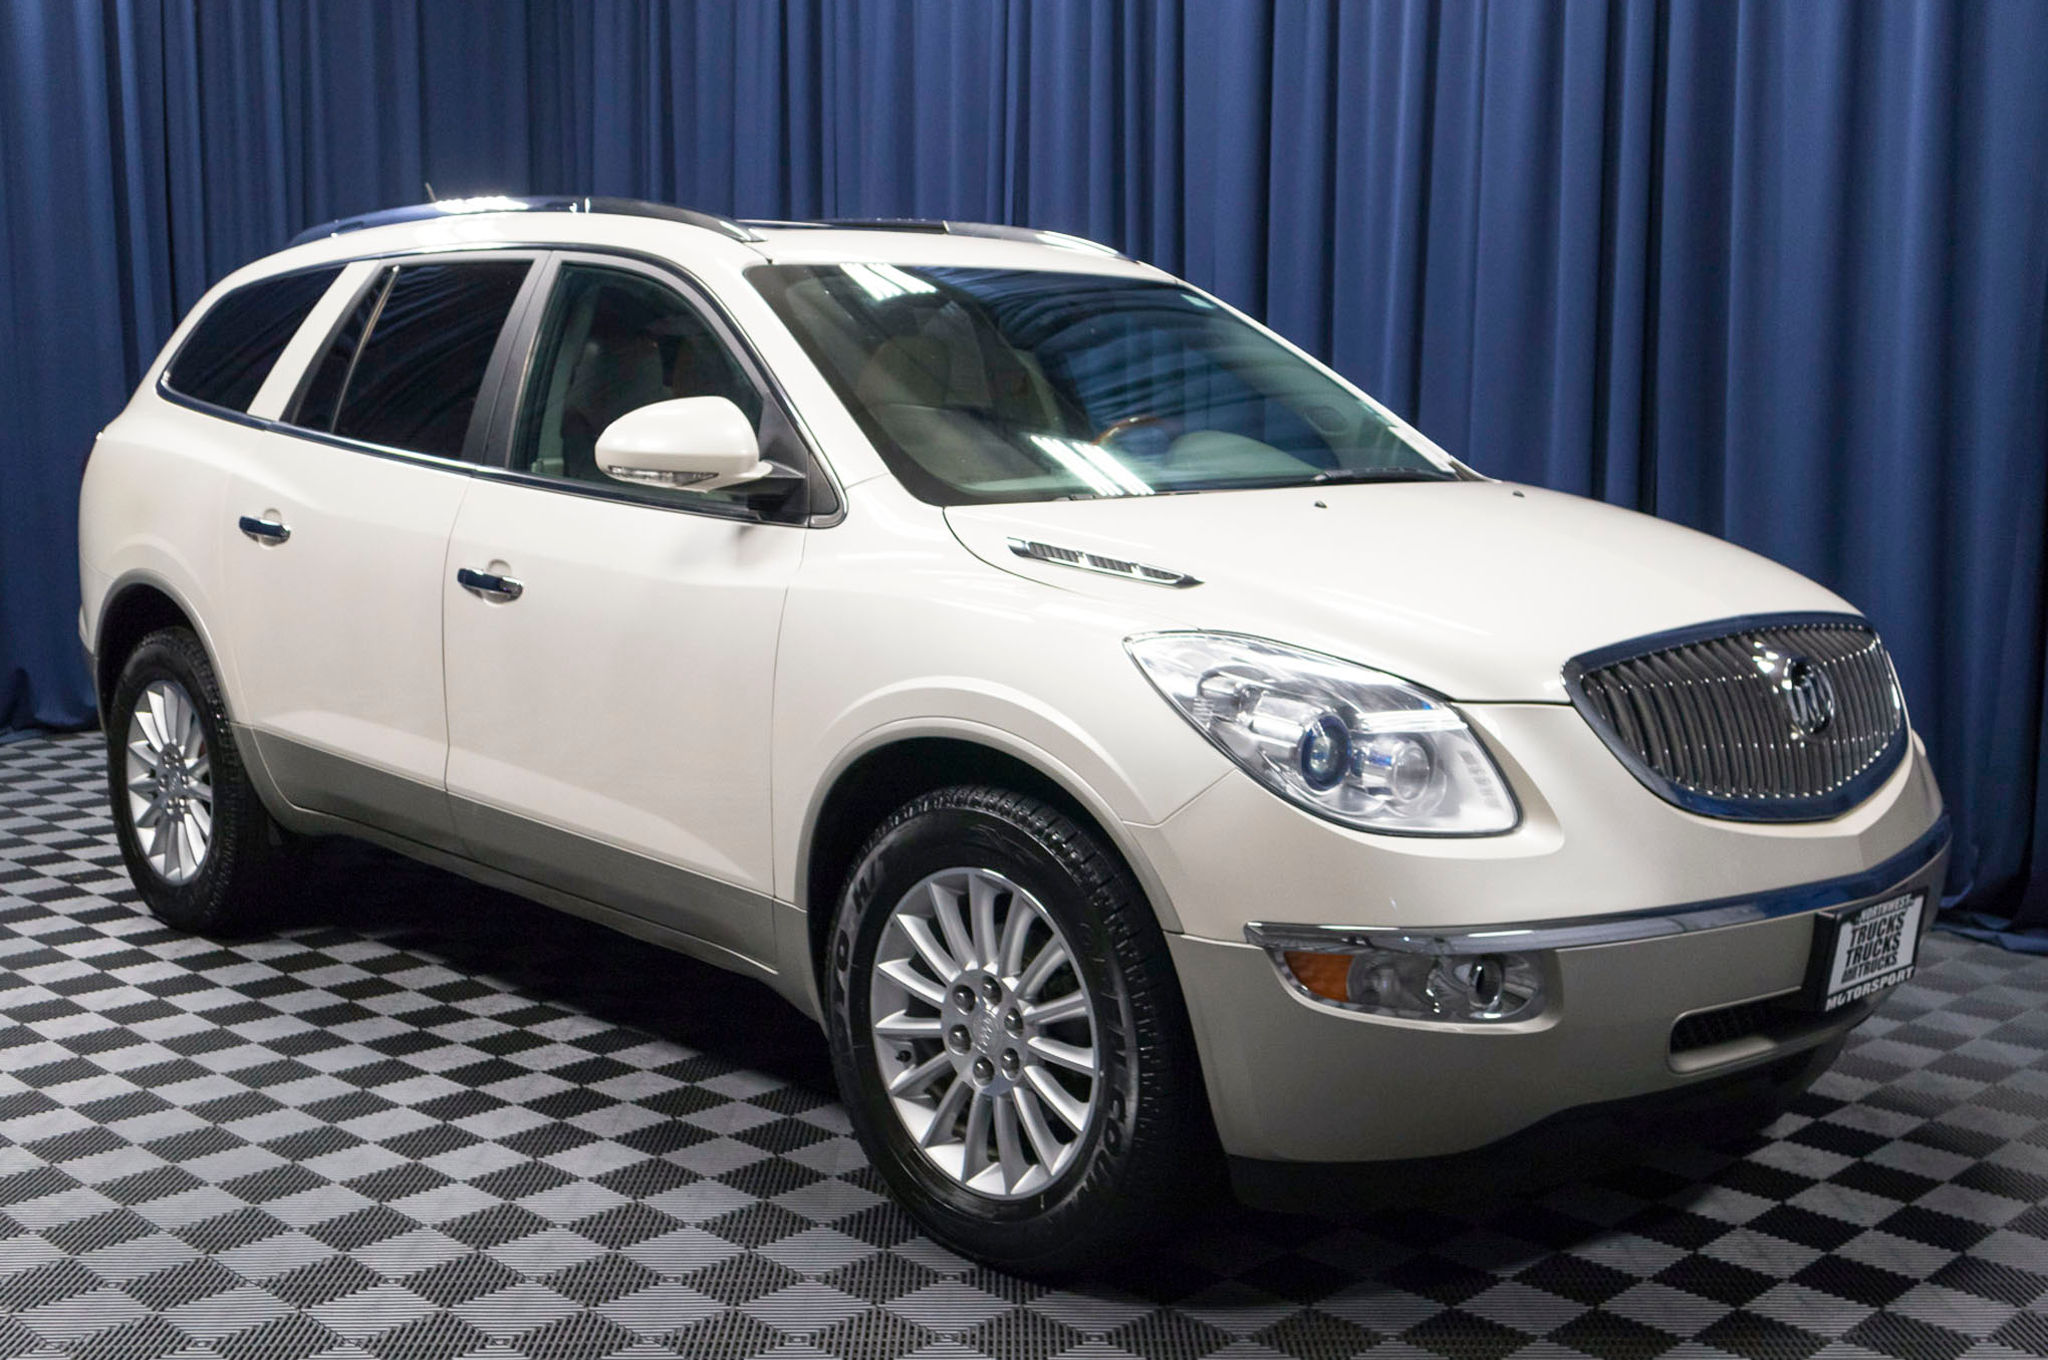 buick az vista sale details freedom for enclave at in automotive sierra inventory cxl